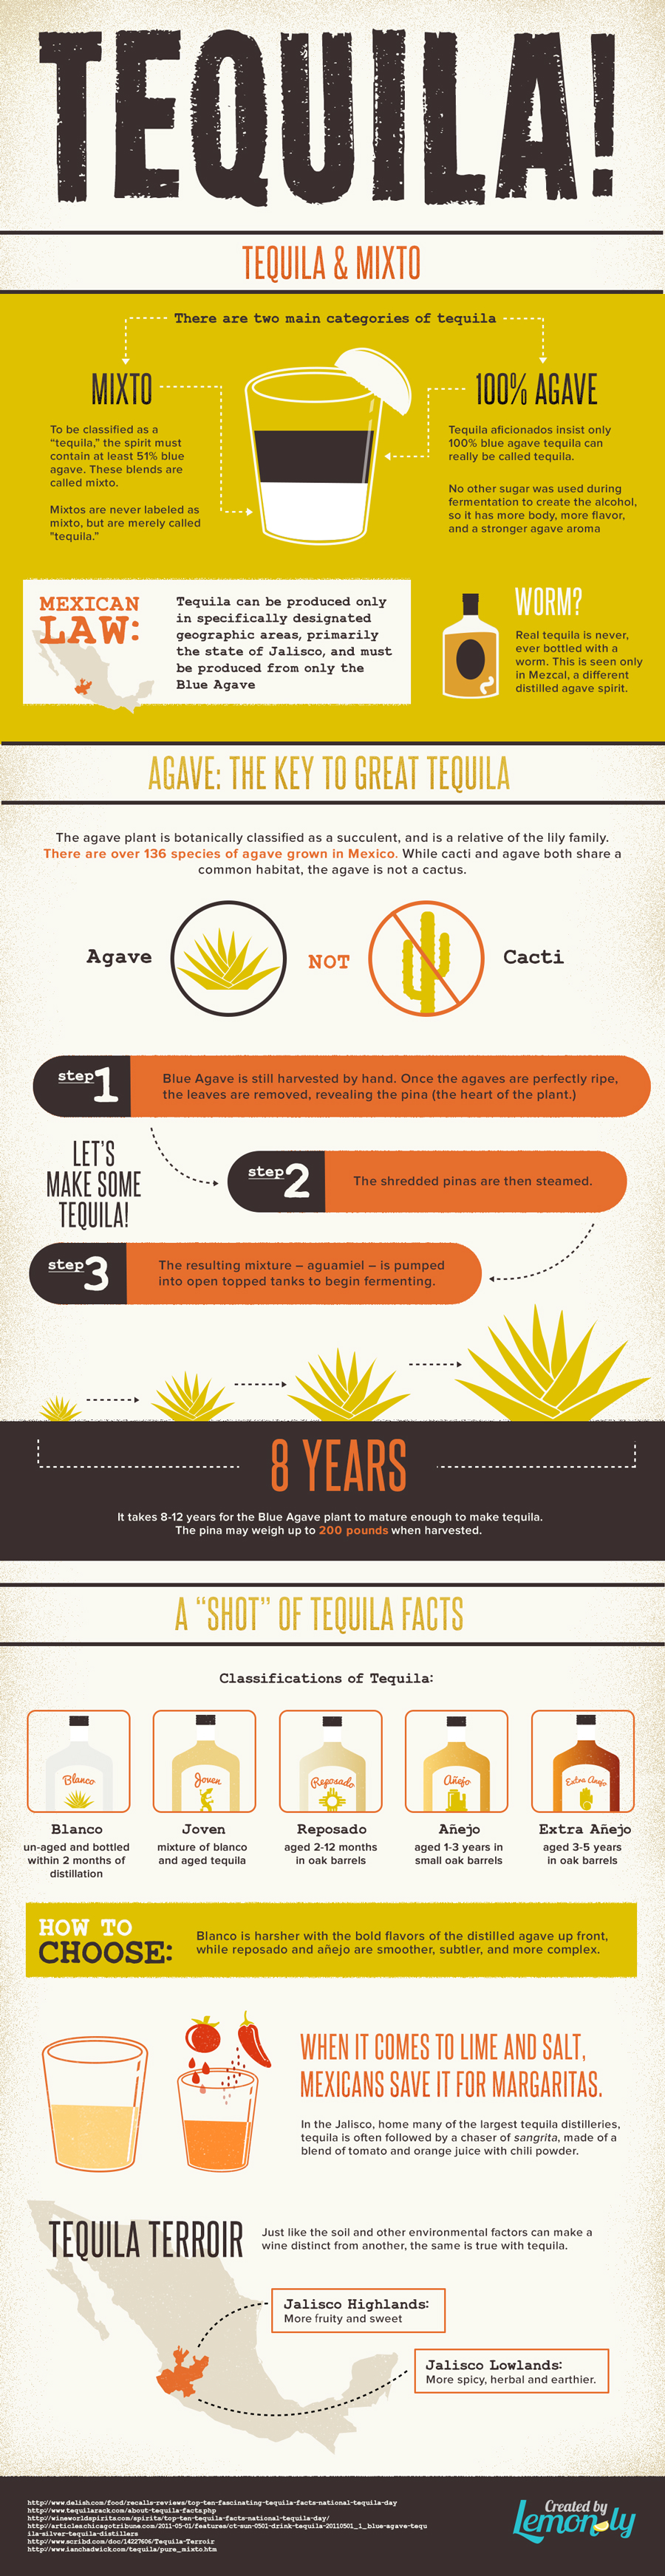 All About Tequila Infographic: Lemonly